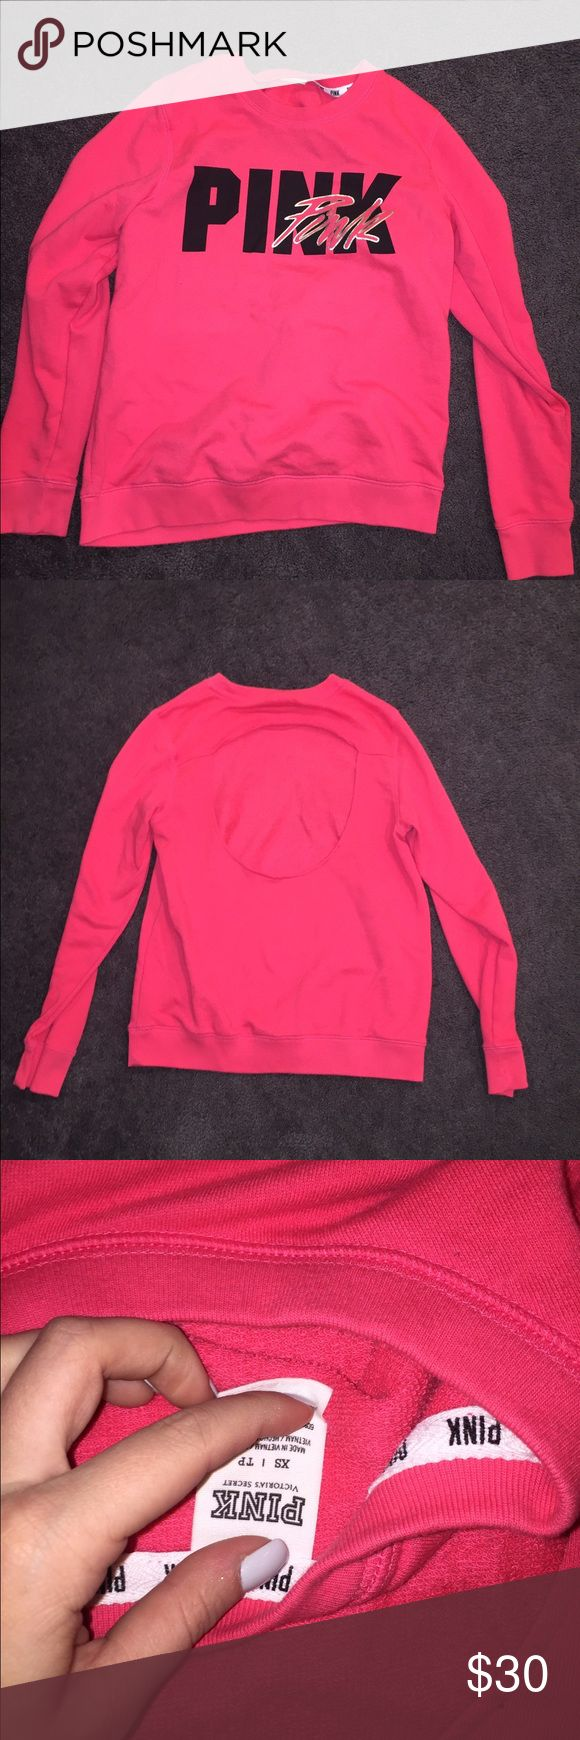 VS PINK HOODIE pink pull over with black writing and cut out back PINK Victoria's Secret Tops Sweatshirts & Hoodies